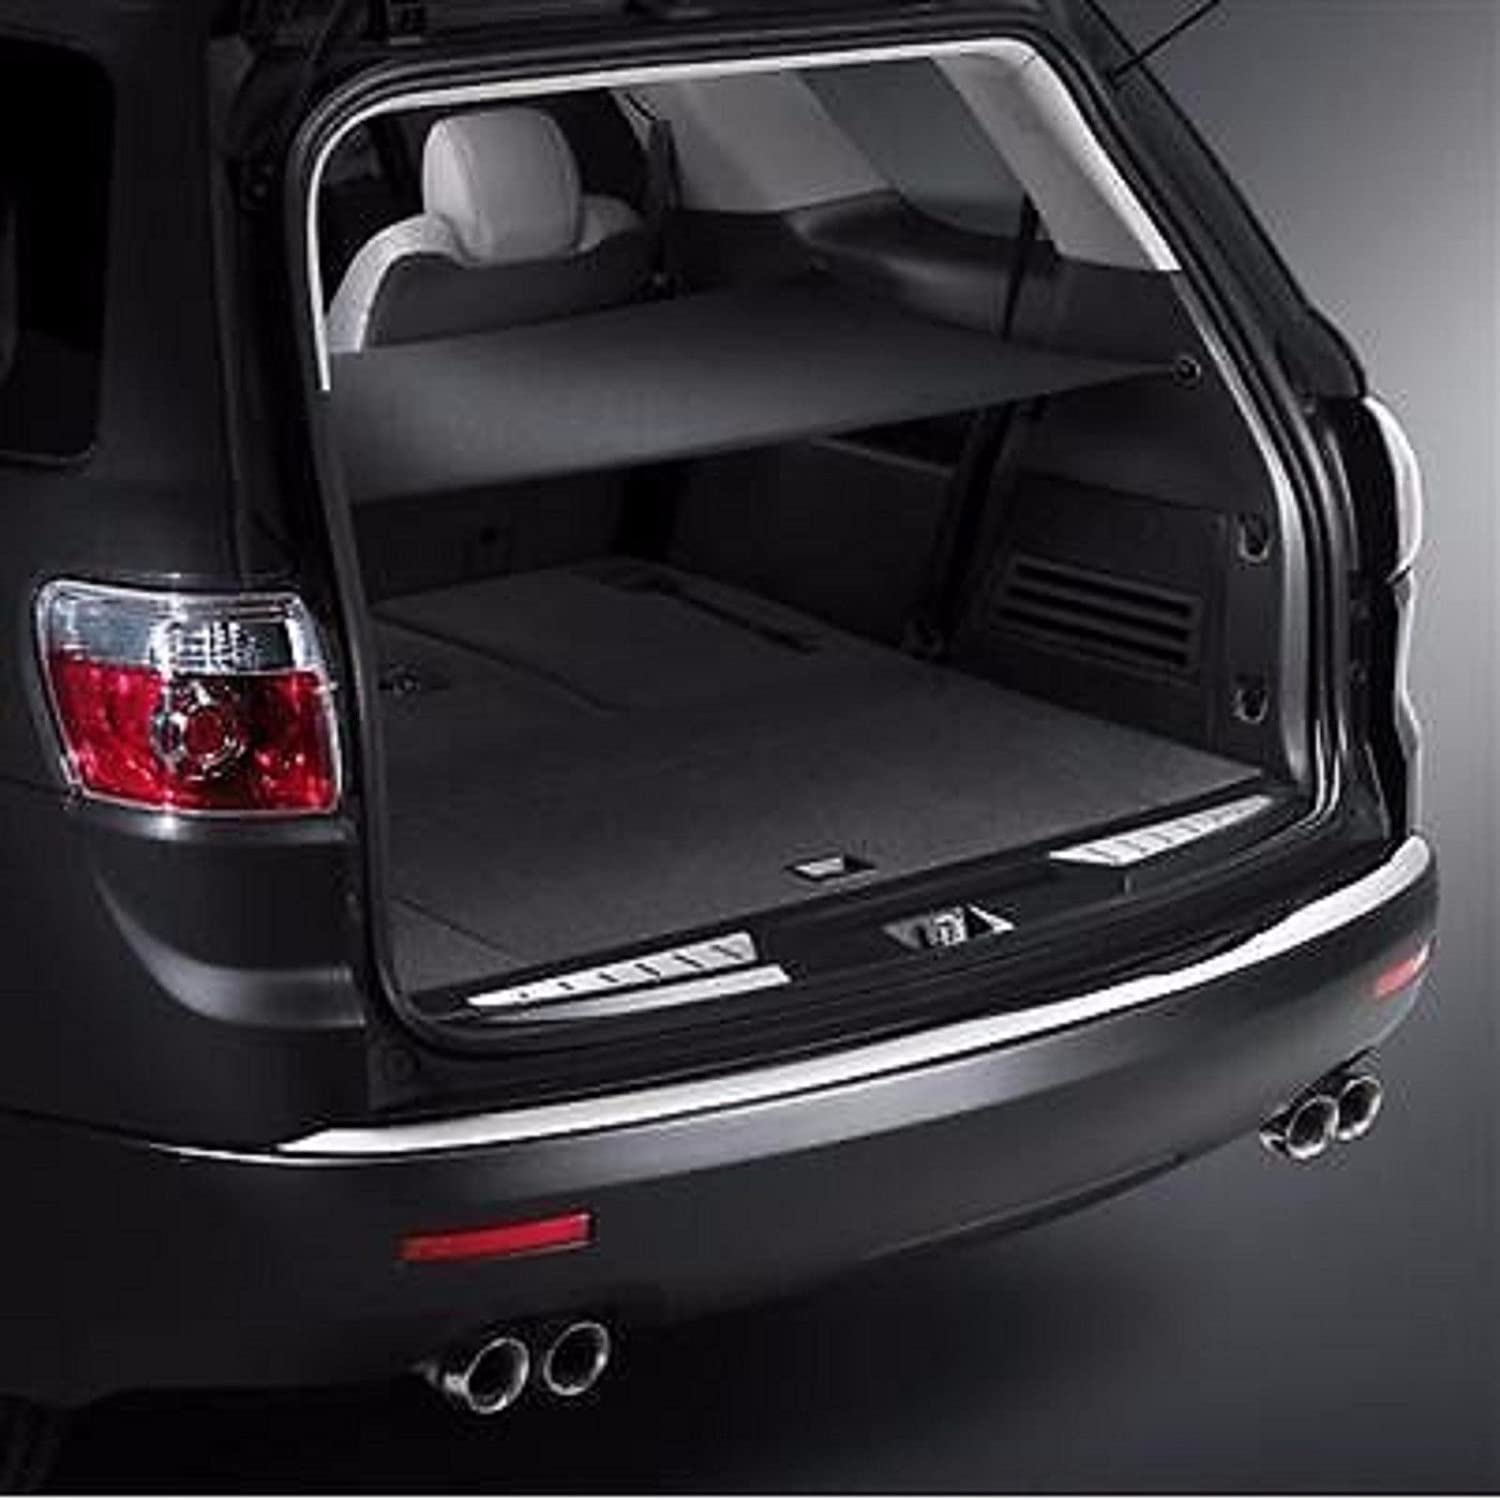 TRUNK SECURITY CARGO AREA SHADE COVER EBONY FOR GMC Acadia Buick Enclave Chevy Traverse Saturn Outlook BRAND NEW